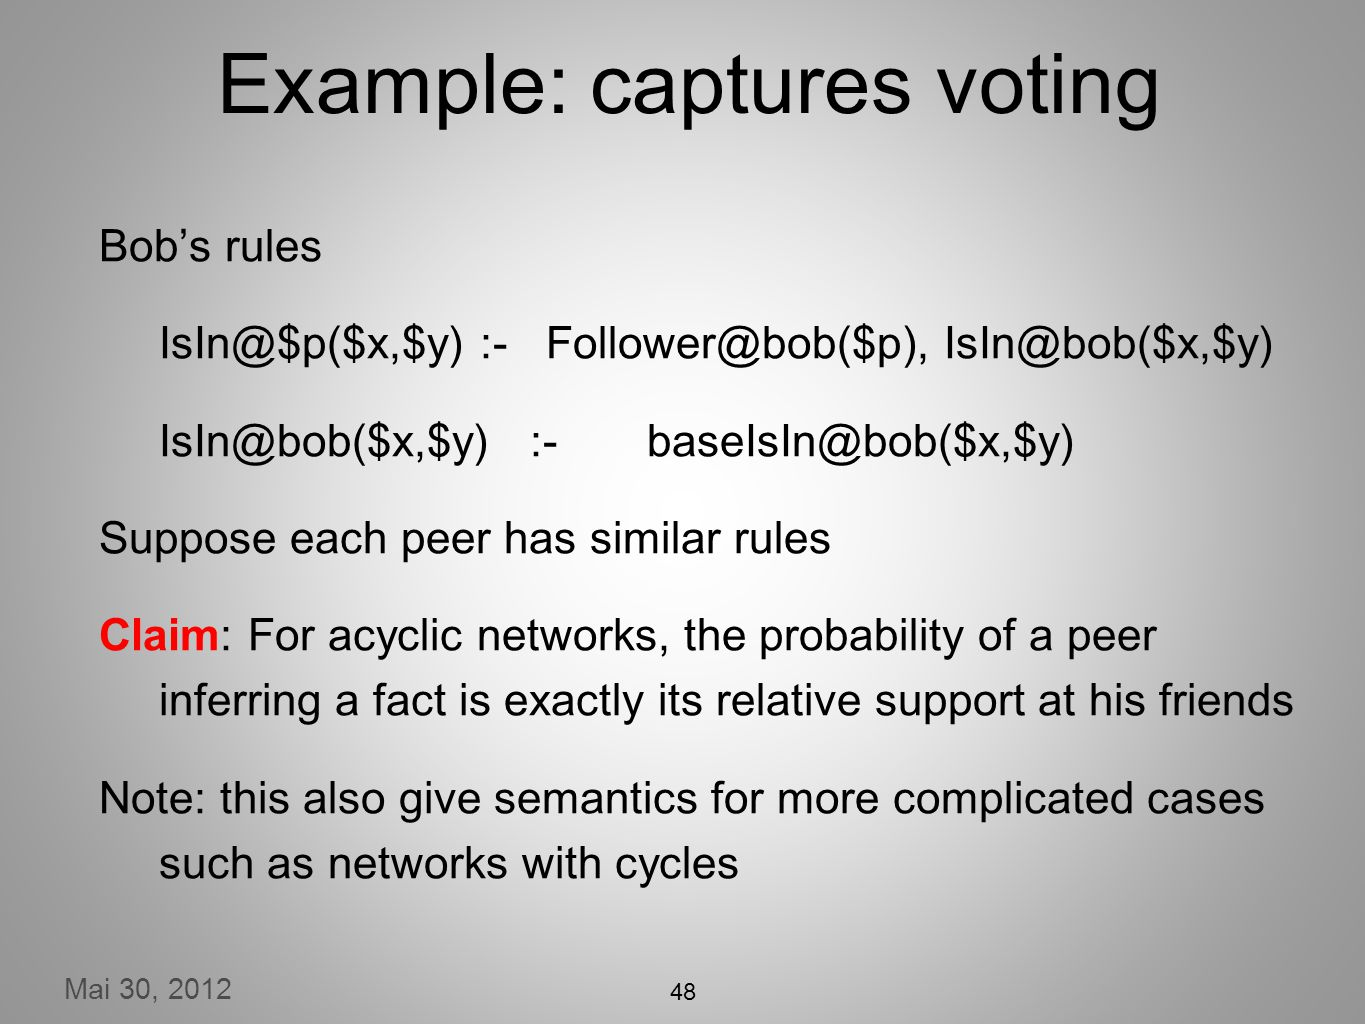 Mai 30, 2012 Example: captures voting Bobs rules IsIn@$p($x,$y) :- Follower@bob($p), IsIn@bob($x,$y) IsIn@bob($x,$y) :-baseIsIn@bob($x,$y) Suppose each peer has similar rules Claim: For acyclic networks, the probability of a peer inferring a fact is exactly its relative support at his friends Note: this also give semantics for more complicated cases such as networks with cycles 48